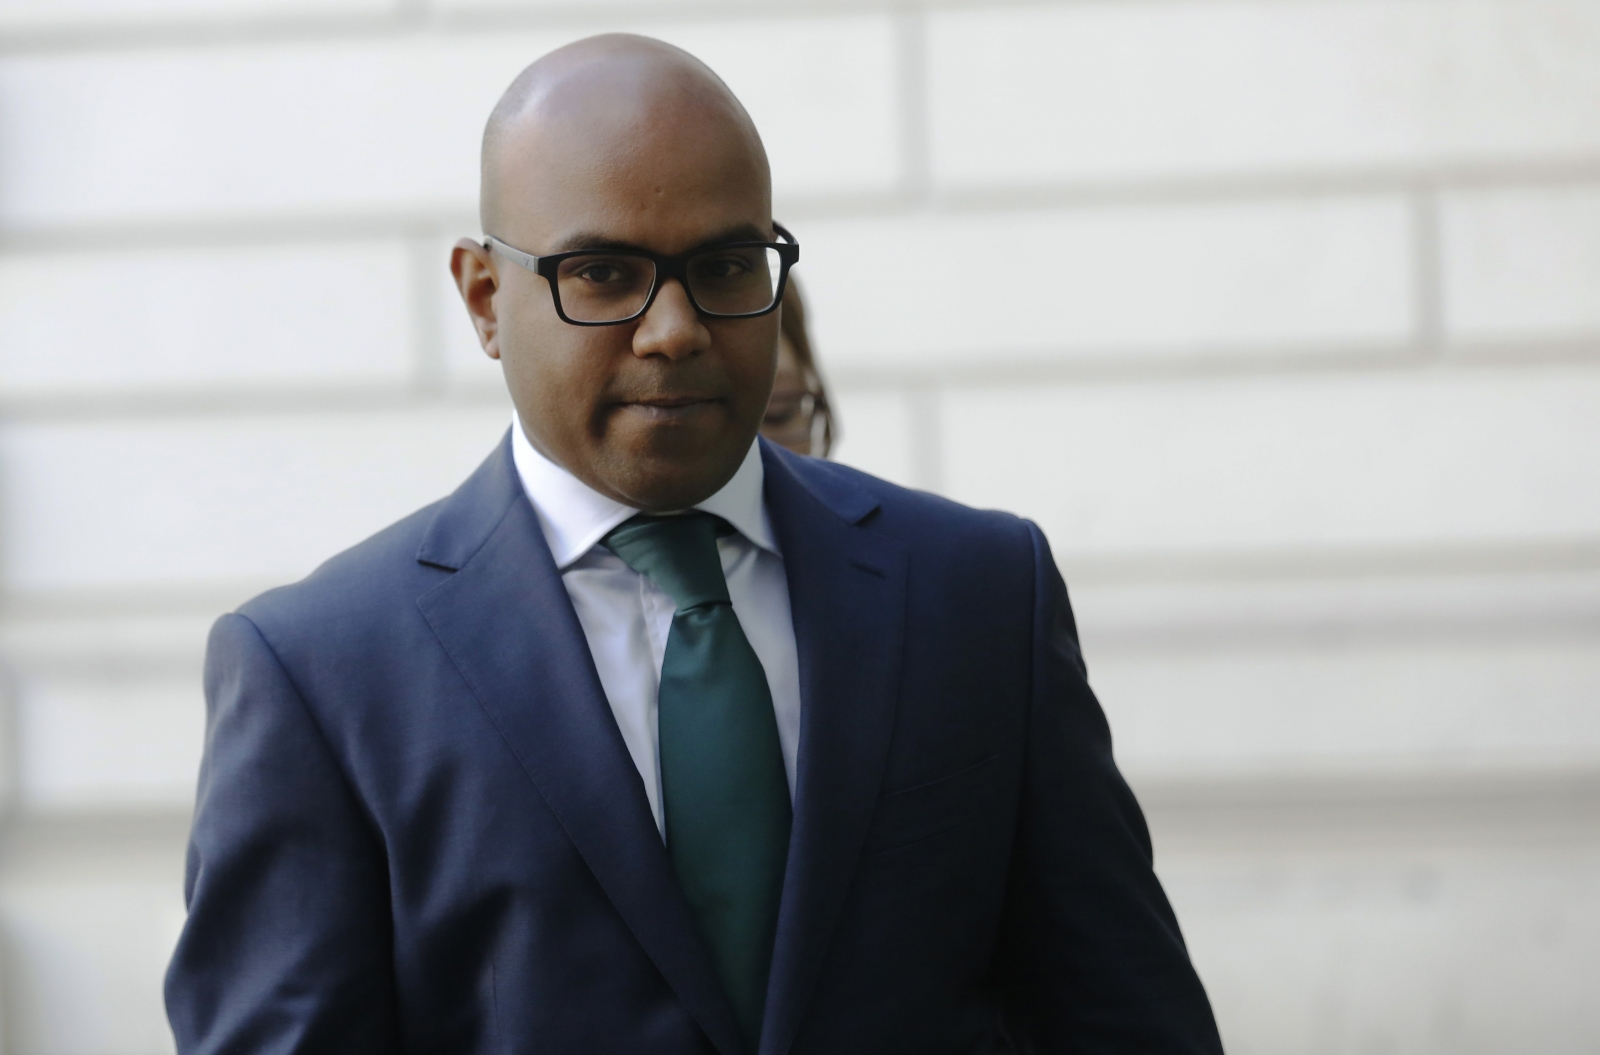 Dr Dharmasena, a registrar at the Whittington hospital, is charged with one count of an offence contrary to the Genital Mutilation Act 2003.